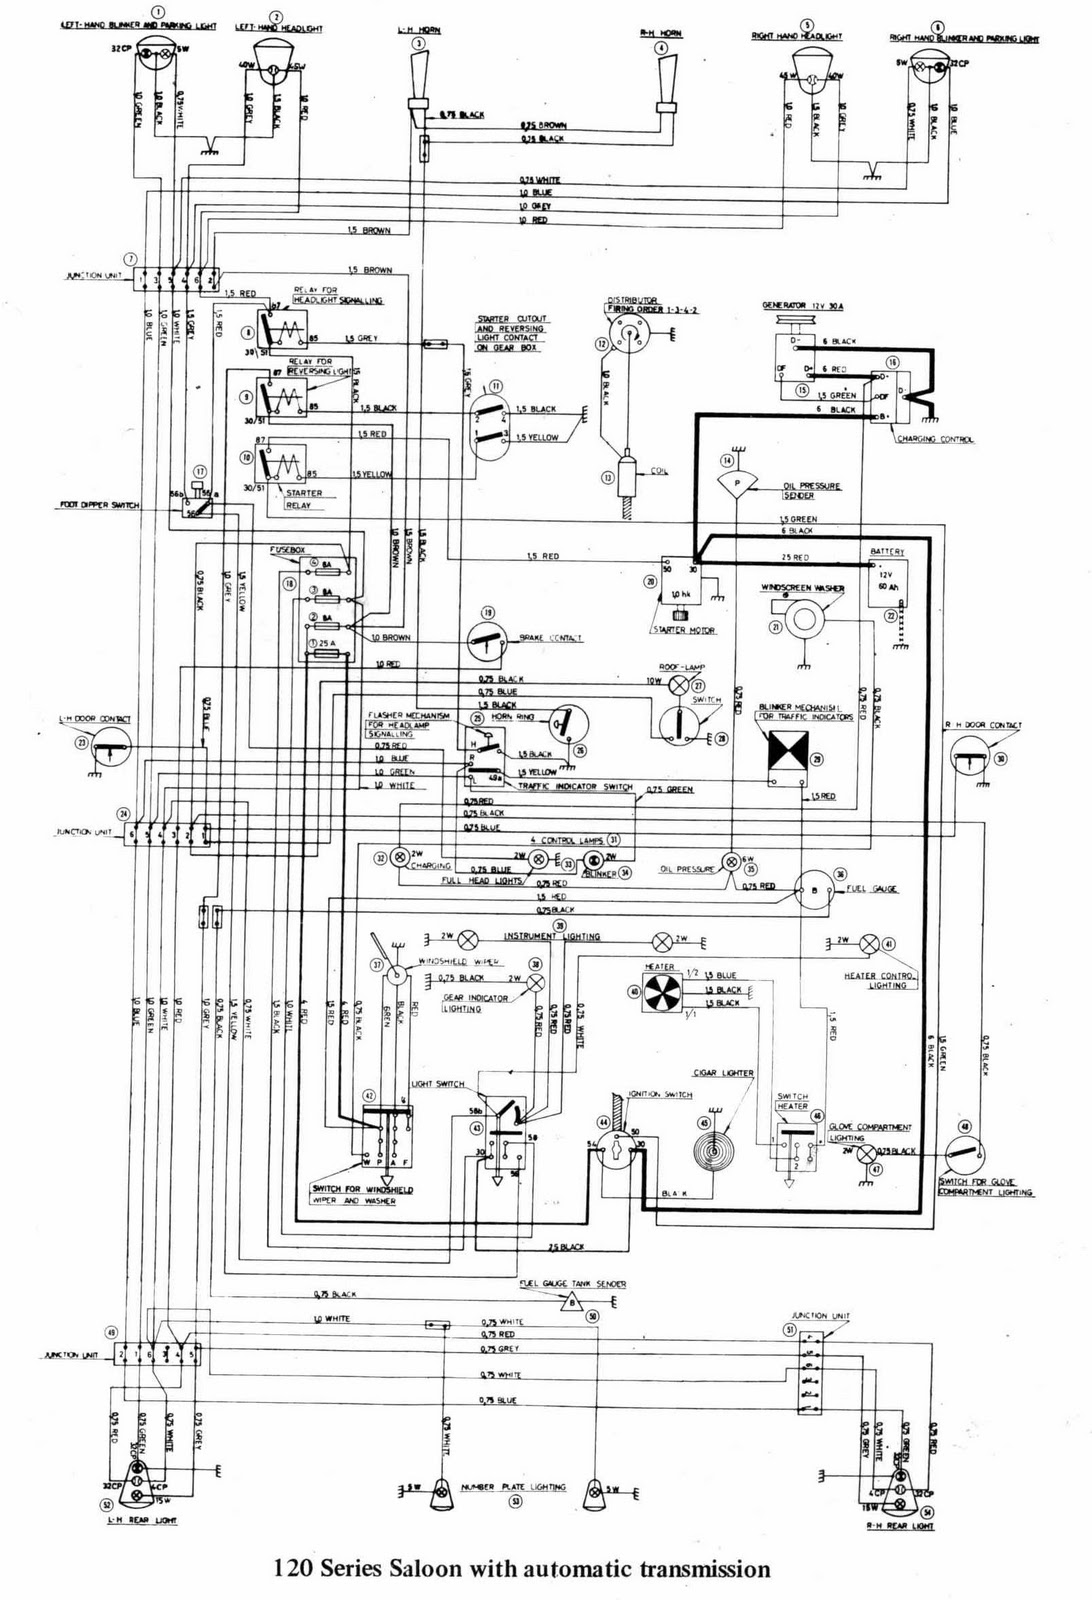 small resolution of volvo truck wiring wiring diagram data todaysemi volvo truck ecu wiring wiring diagram experts volvo truck